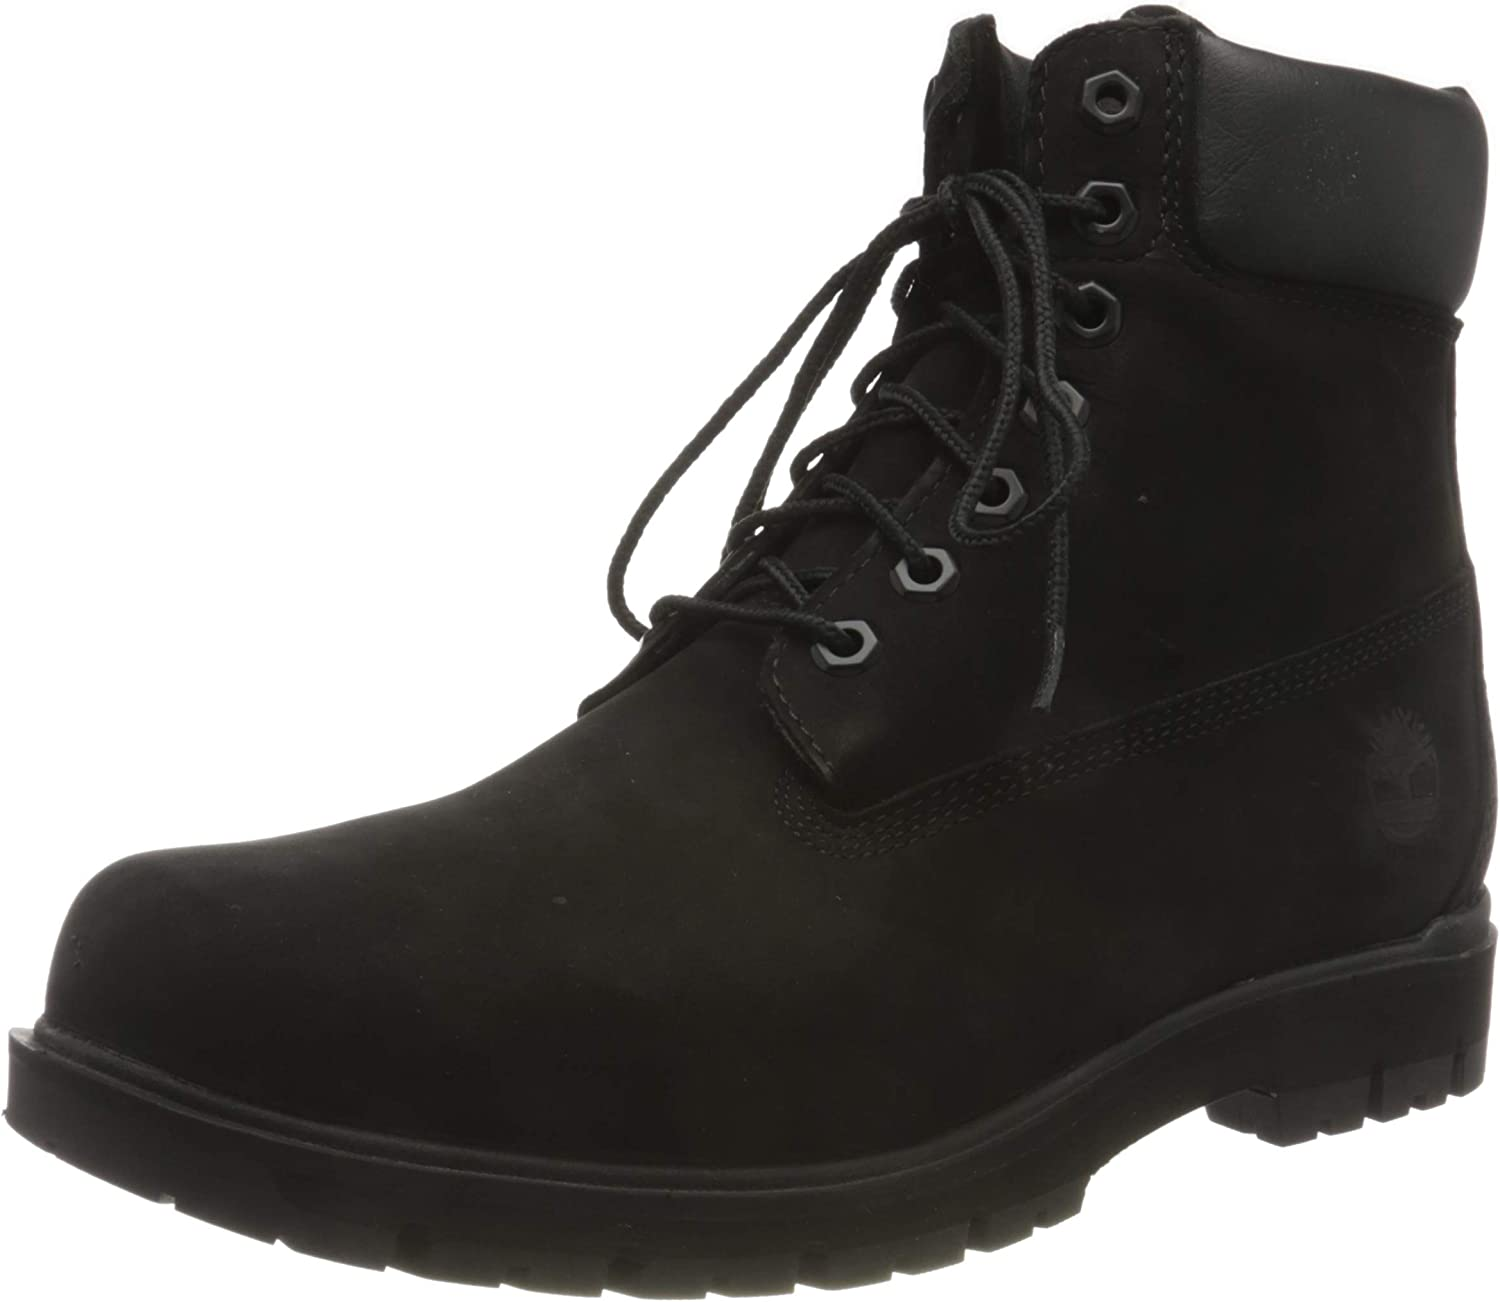 Locura Malawi obvio  Amazon.com | Timberland Men's Ankle Lace-up Boots | Hiking Boots